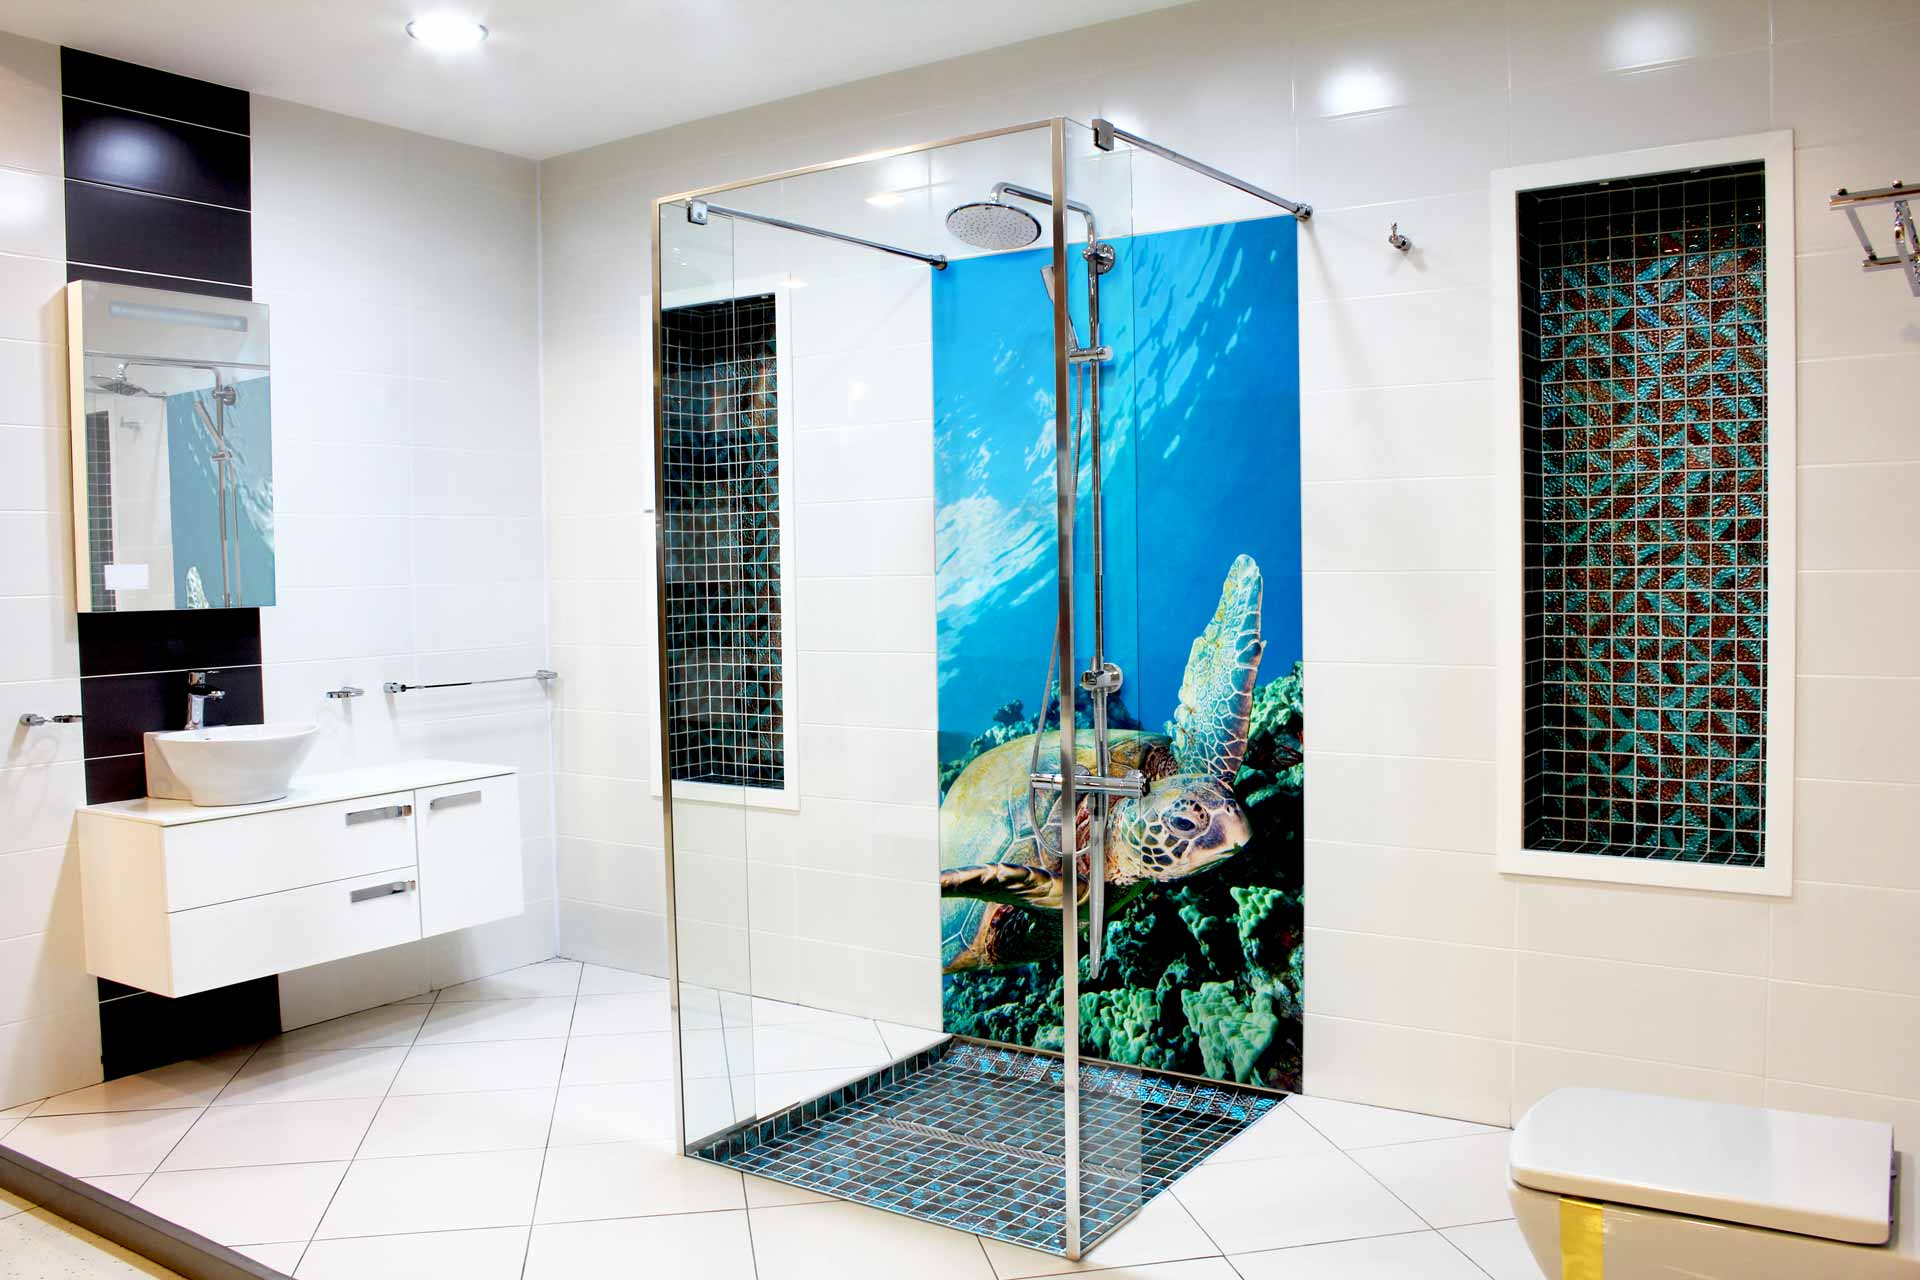 Best bathroom & kitchen splashbacks in Ireland - HQ printed glass